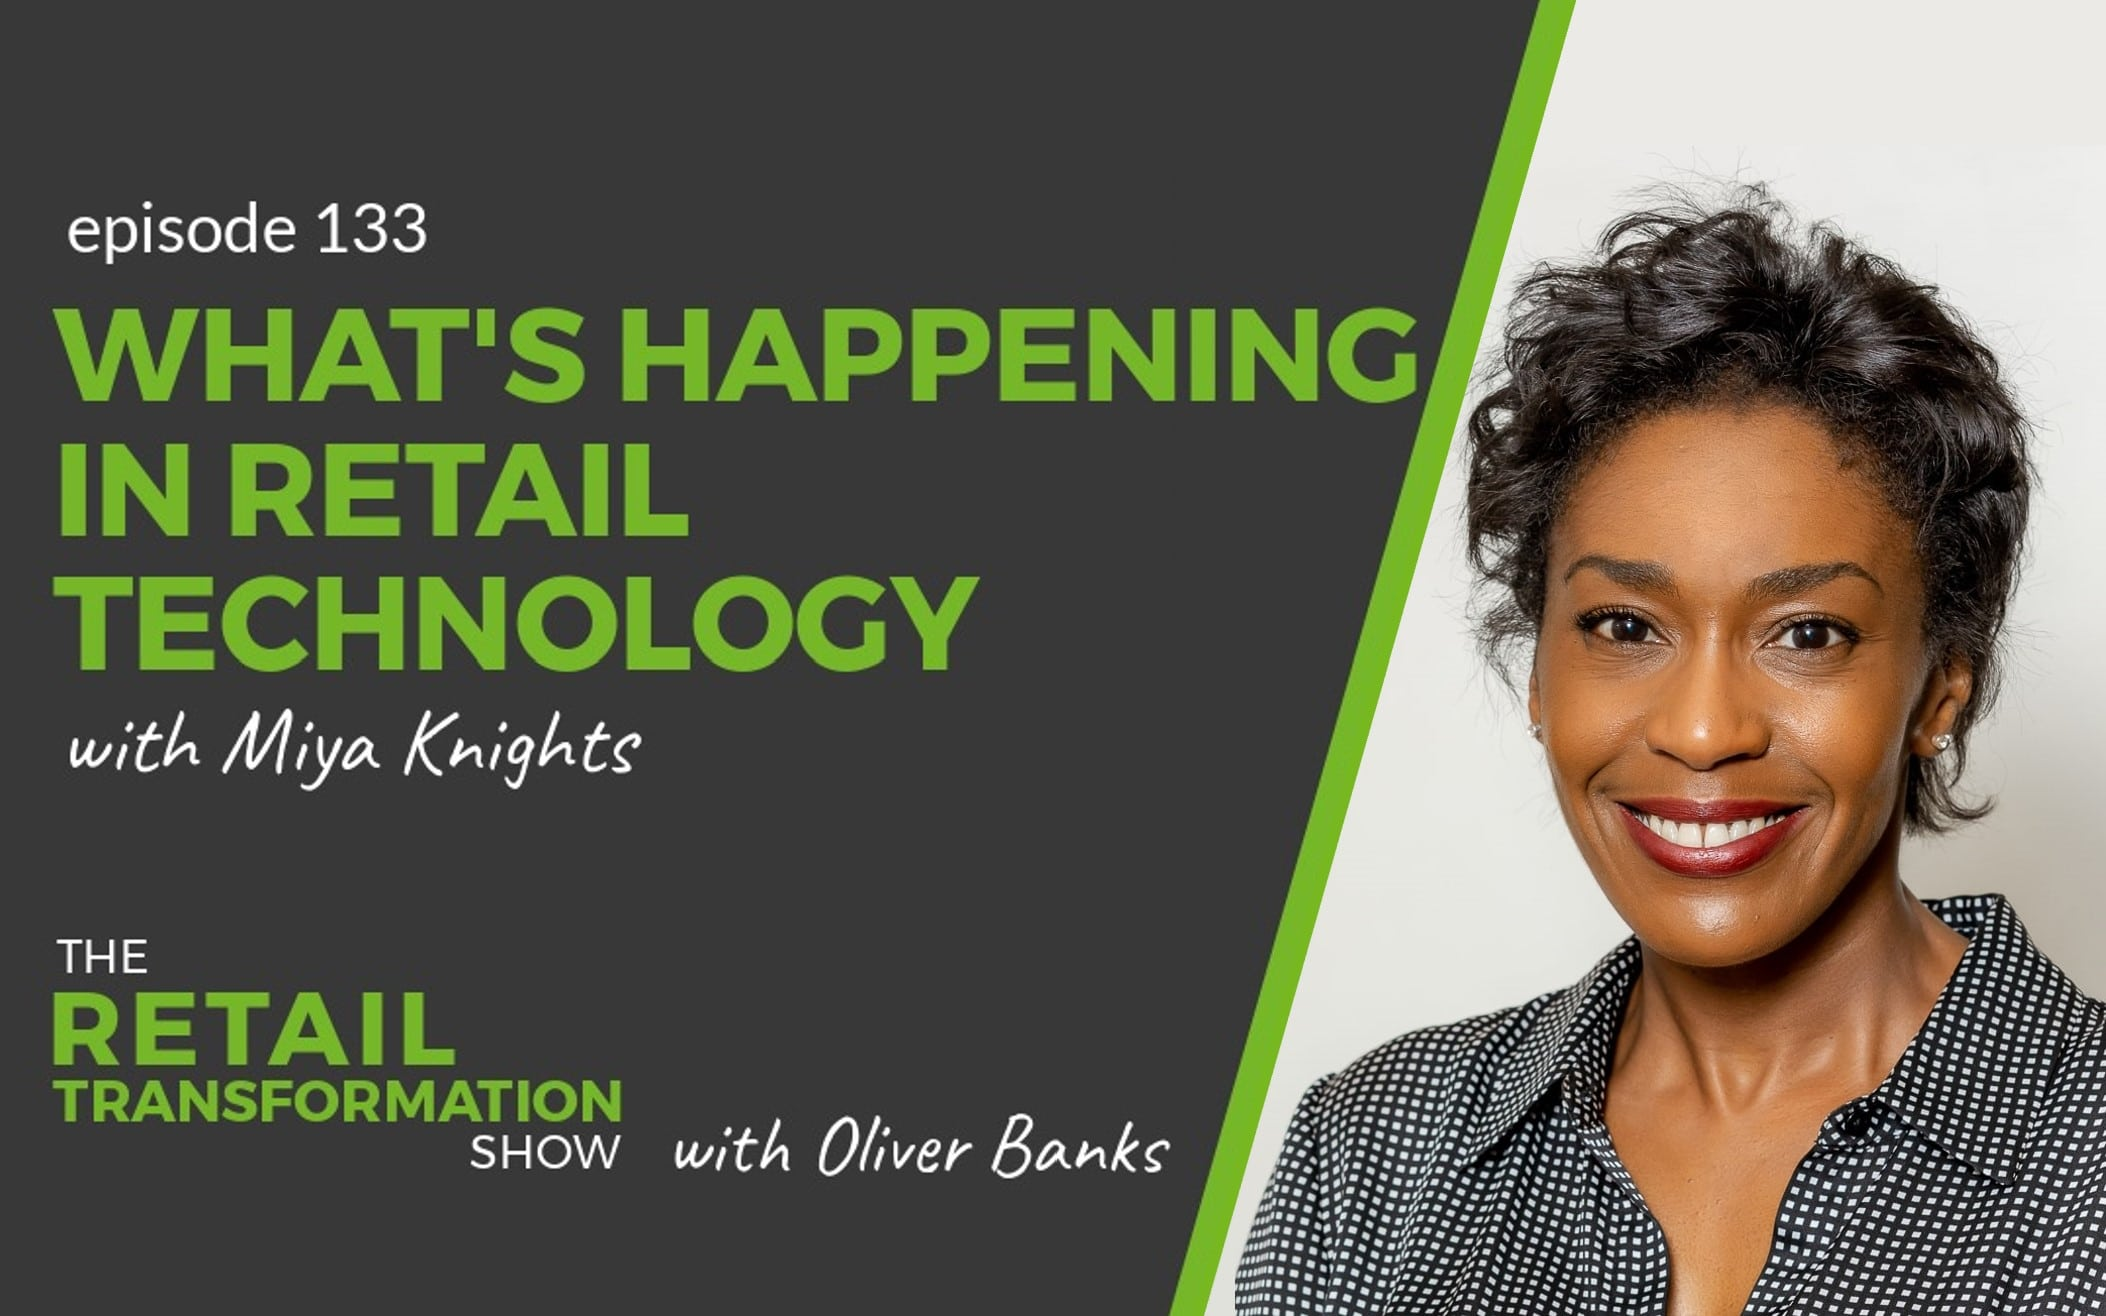 133: What's Happening In Retail Technology with Miya Knights - The Retail Transformation Show with Oliver Banks